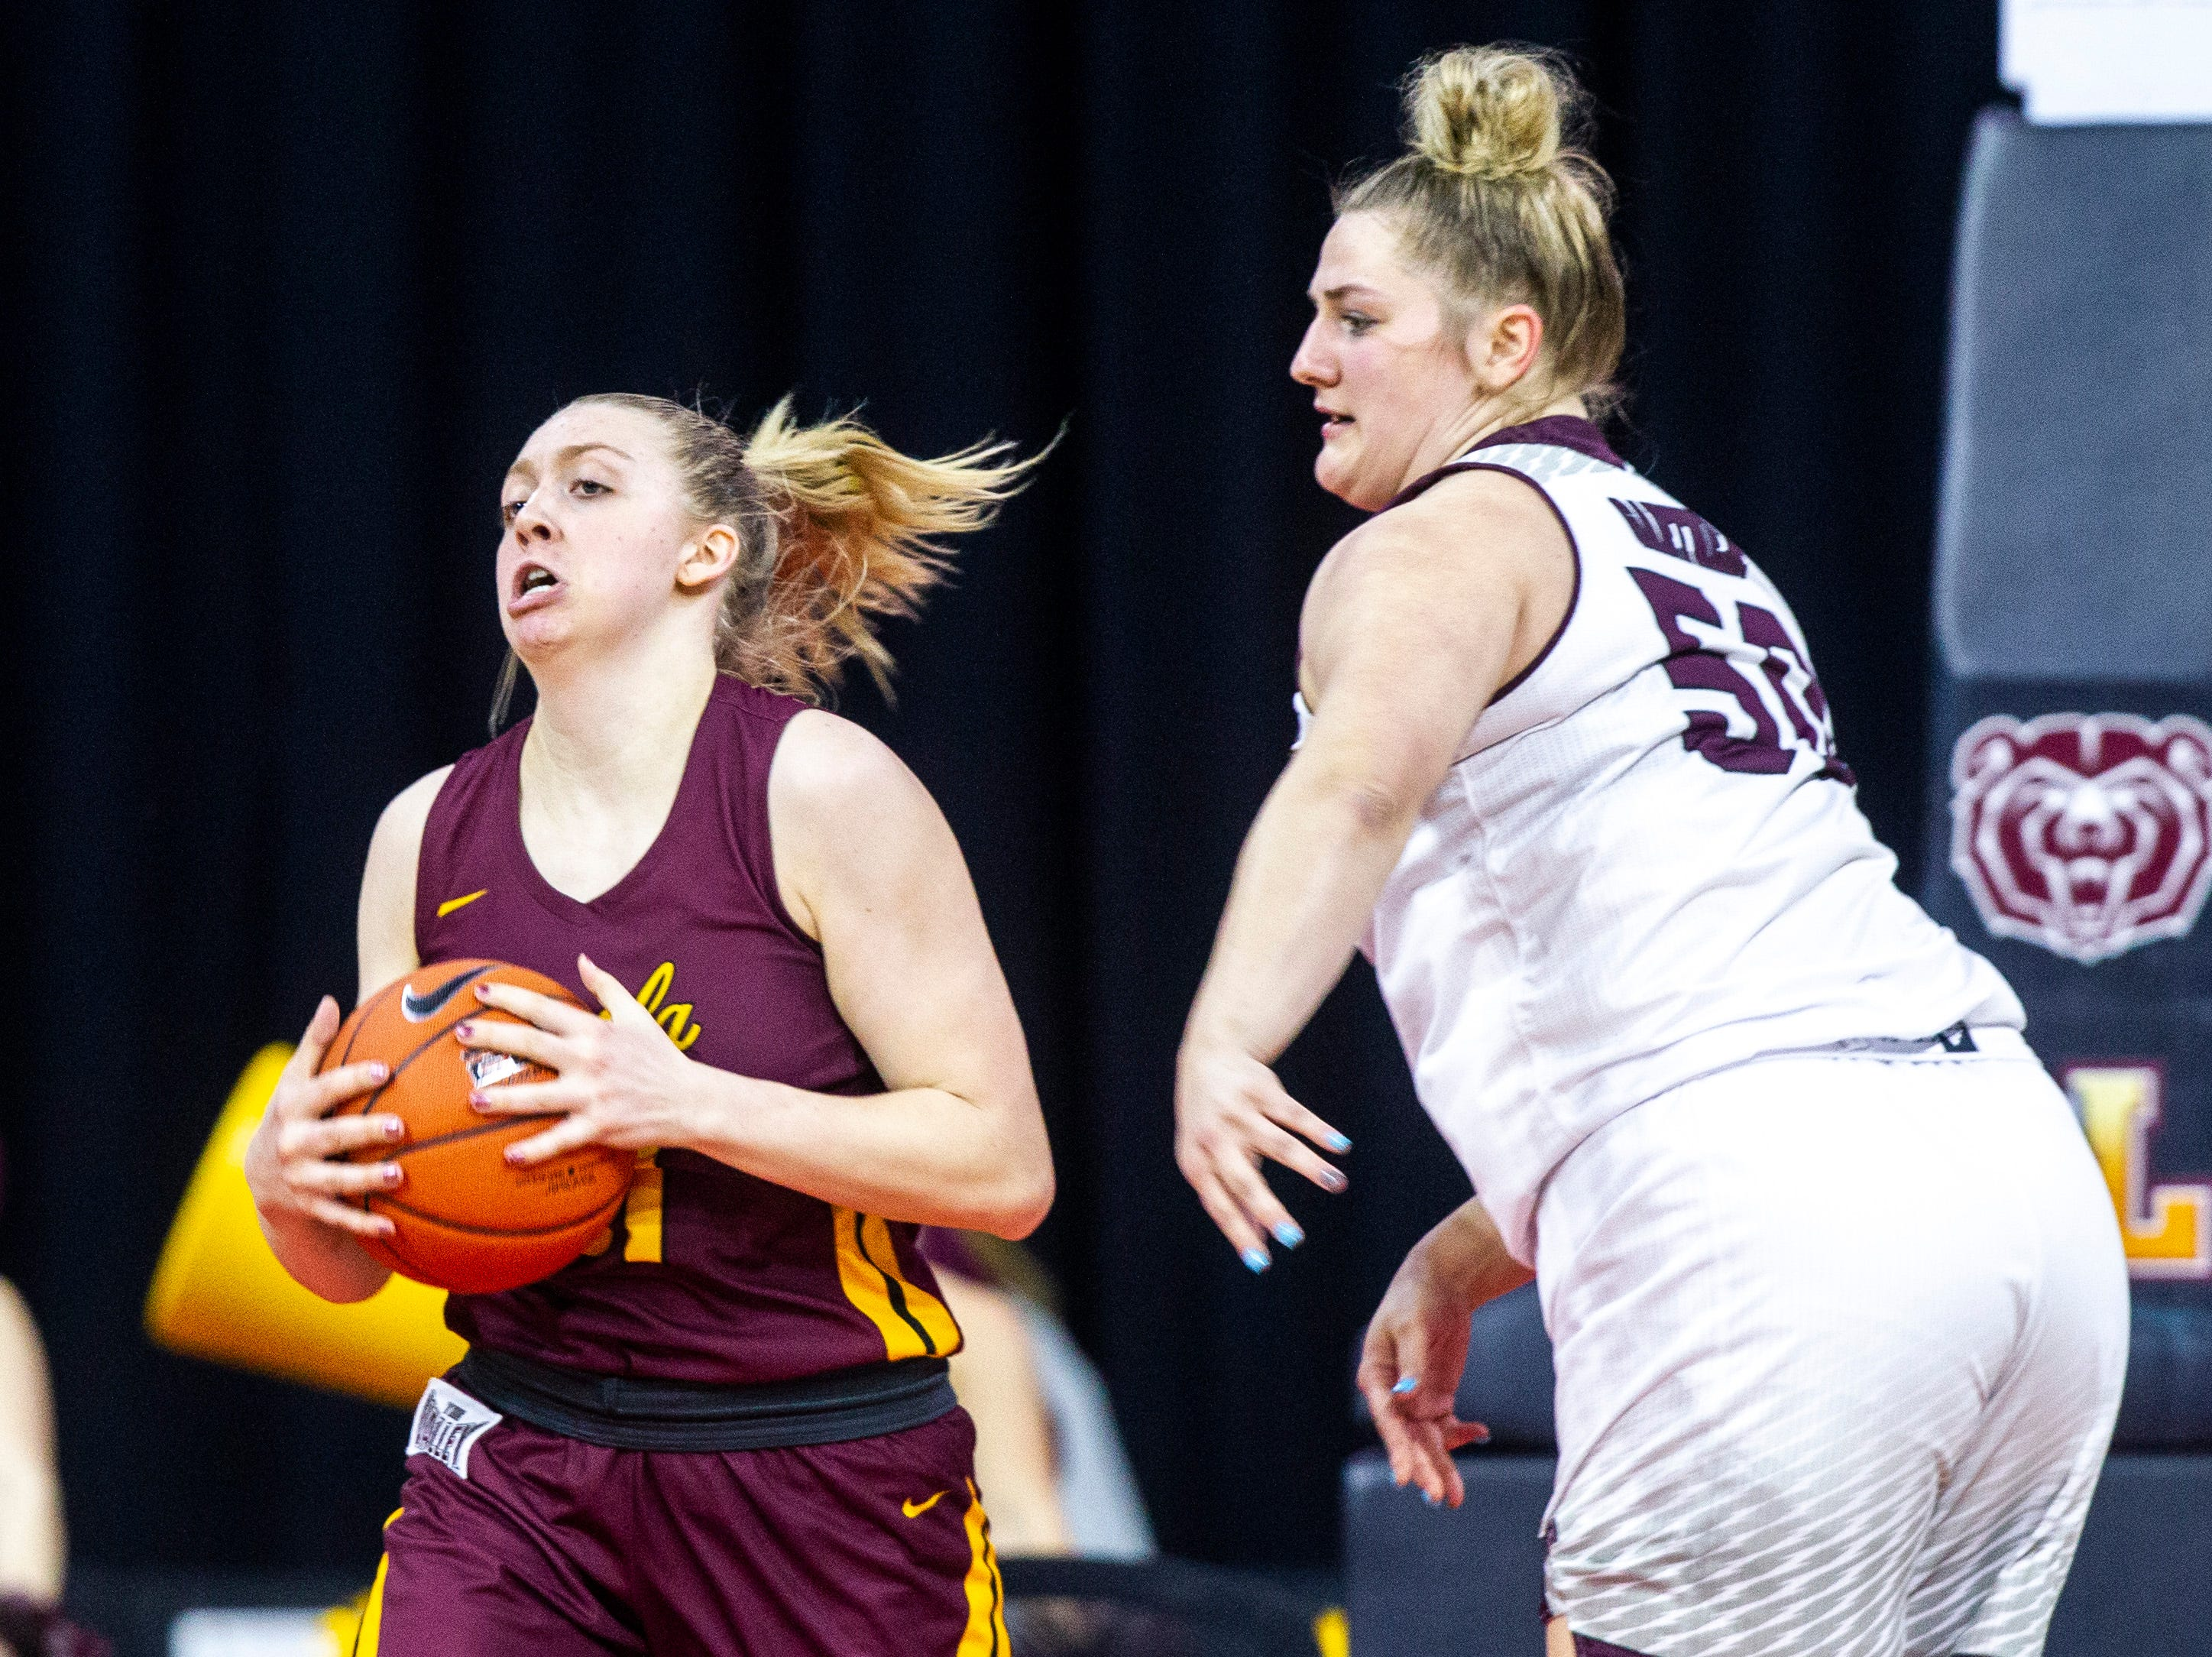 Loyola (Chicago) forward Allison Day (21) grabs a rebound against Missouri State center Emily Gartner (50) during a NCAA Missouri Valley Conference women's basketball quarterfinal tournament game, Friday, March 15, 2019, at the TaxSlayer Center in Moline, Illinois.